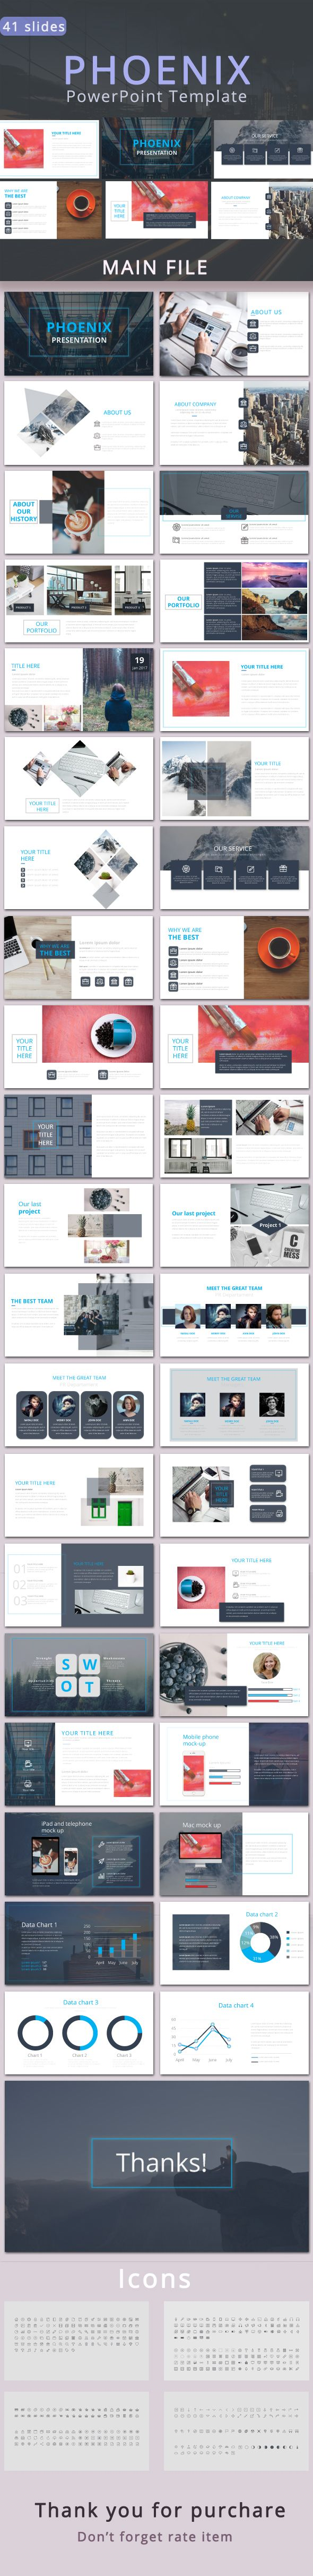 Phoenix Presentation - #Business #PowerPoint #Templates Download here: https://graphicriver.net/item/phoenix-presentation/19509019?ref=alena994